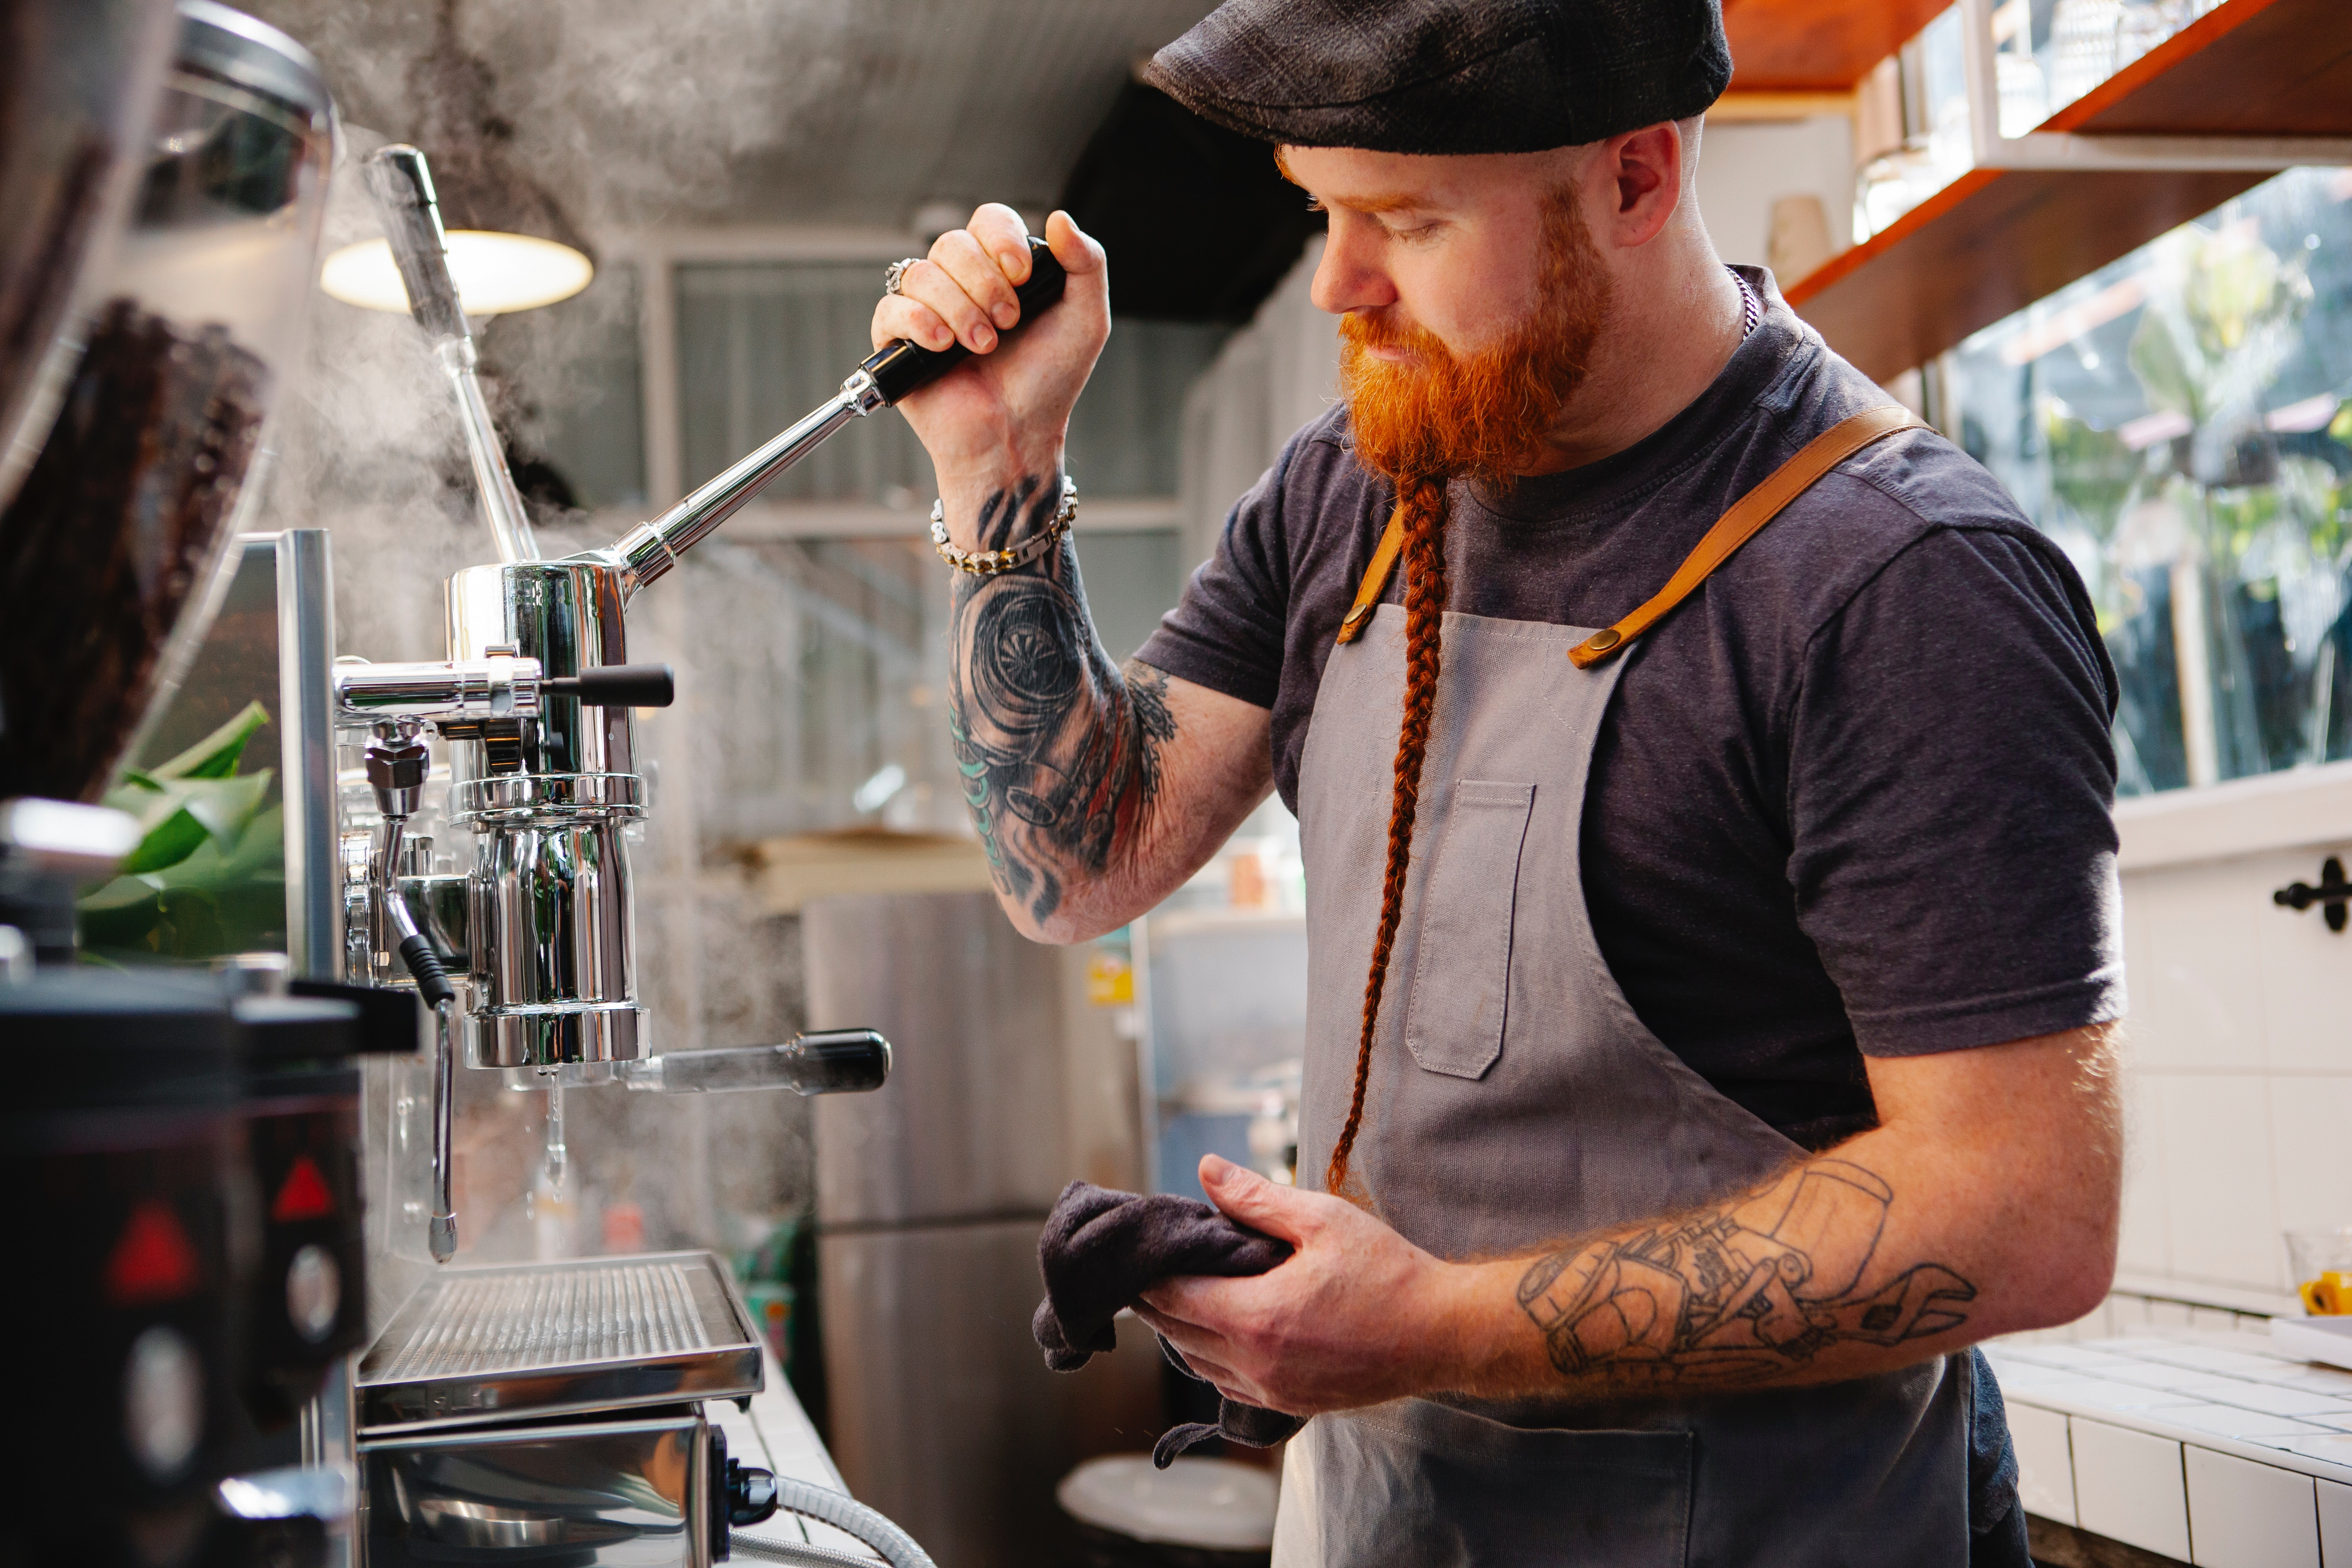 Male barista with ginger hair and long plaited beard making a coffee